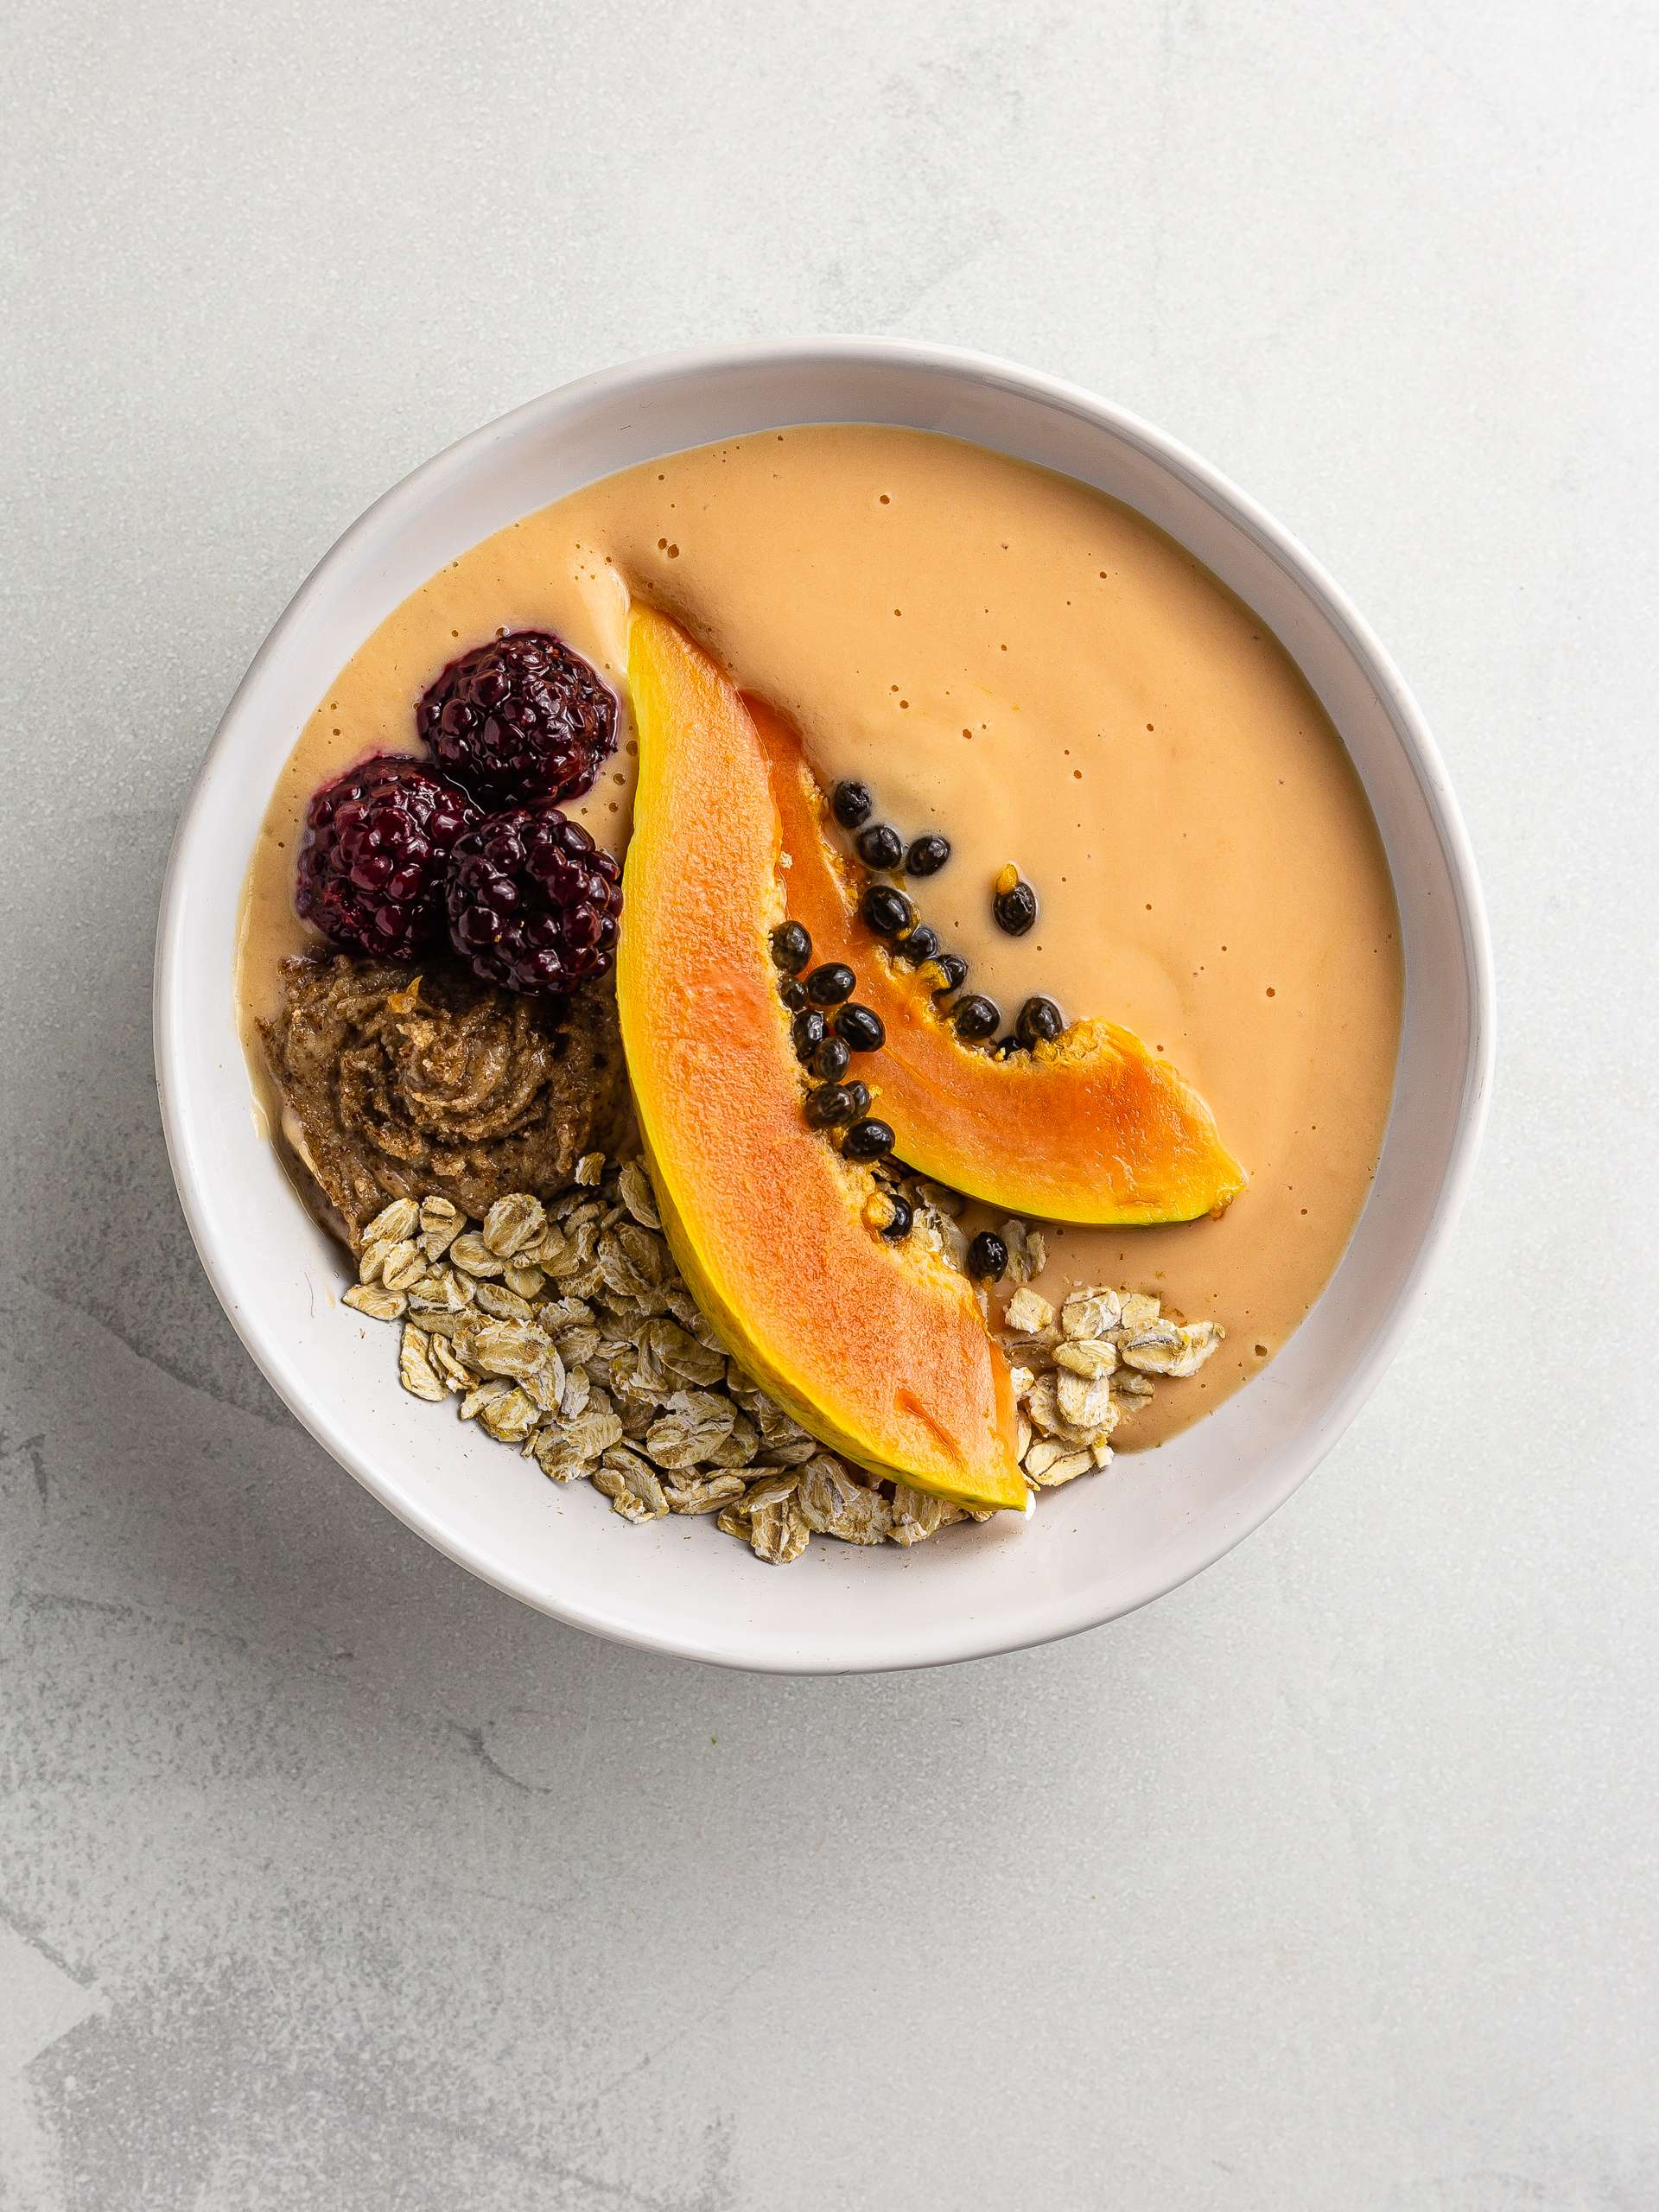 papaya smoothie bowl with oats and blackberries